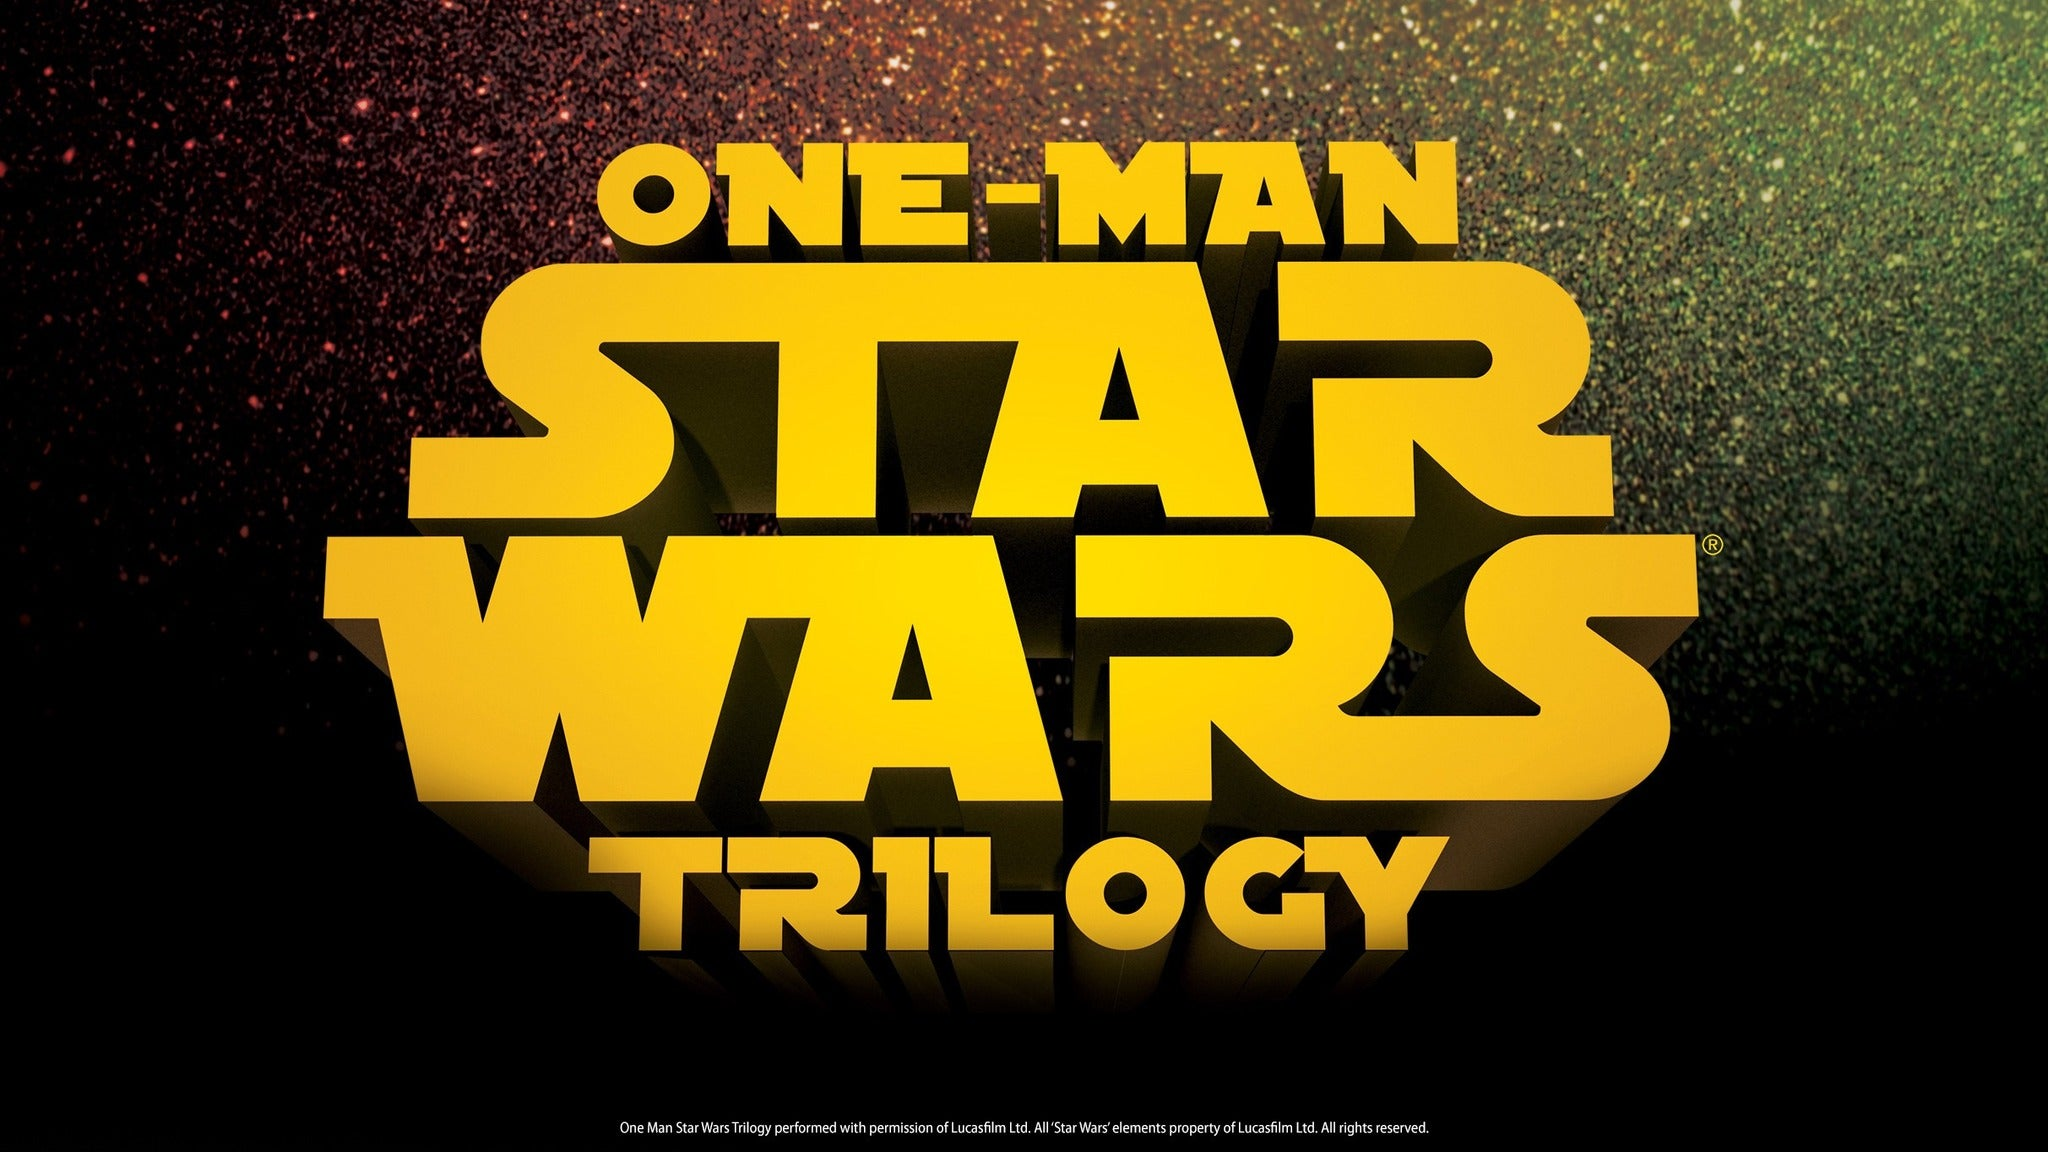 One Man Star Wars at Effingham Performance Center - Effingham, IL 62401